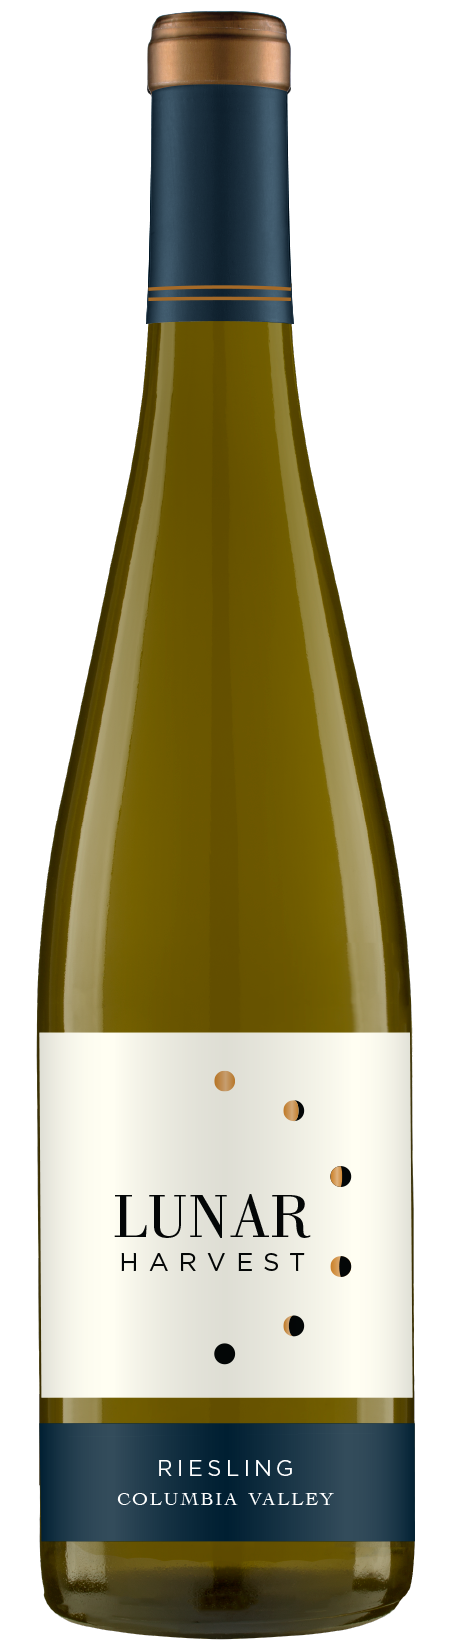 Lunar Harvest Riesling - Columbia Valley AVATASTING NOTEBright flavors of freshly picked peaches and oranges lead to a crisp finish. Medium sweet.FOOD PAIRINGSpicy Asian dishes, vegetable stir fry, & crabWINE SPECSABV 13.1%TA 7.35pH 2.88